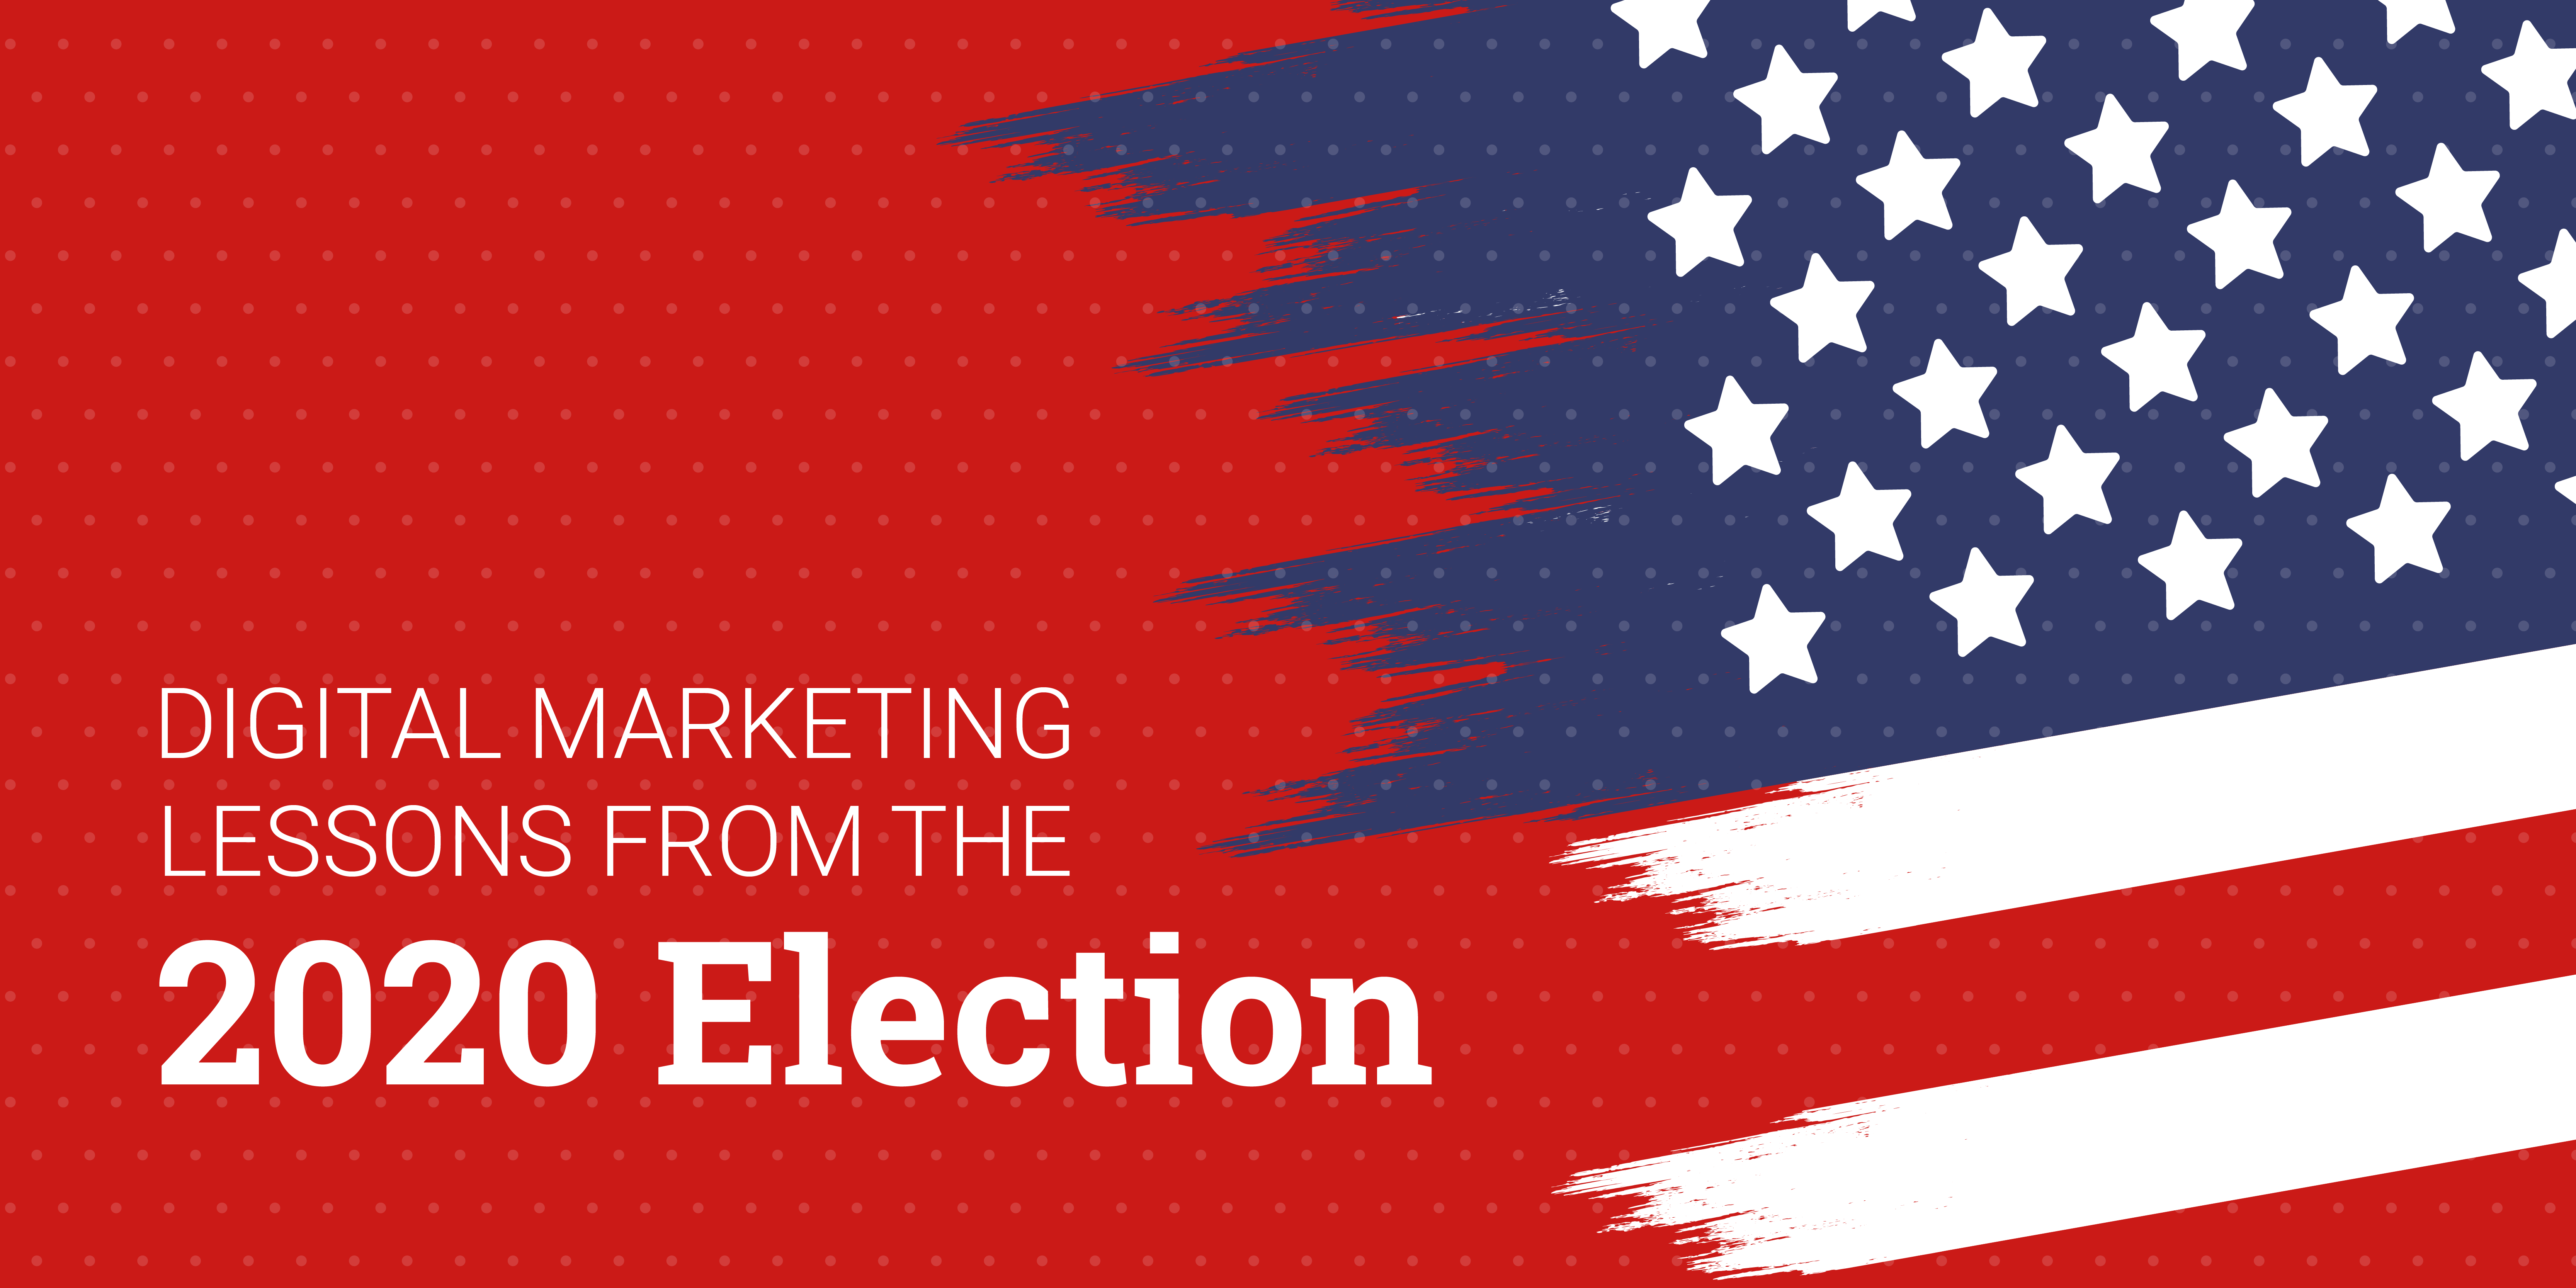 Digital Marketing and the 2020 Election